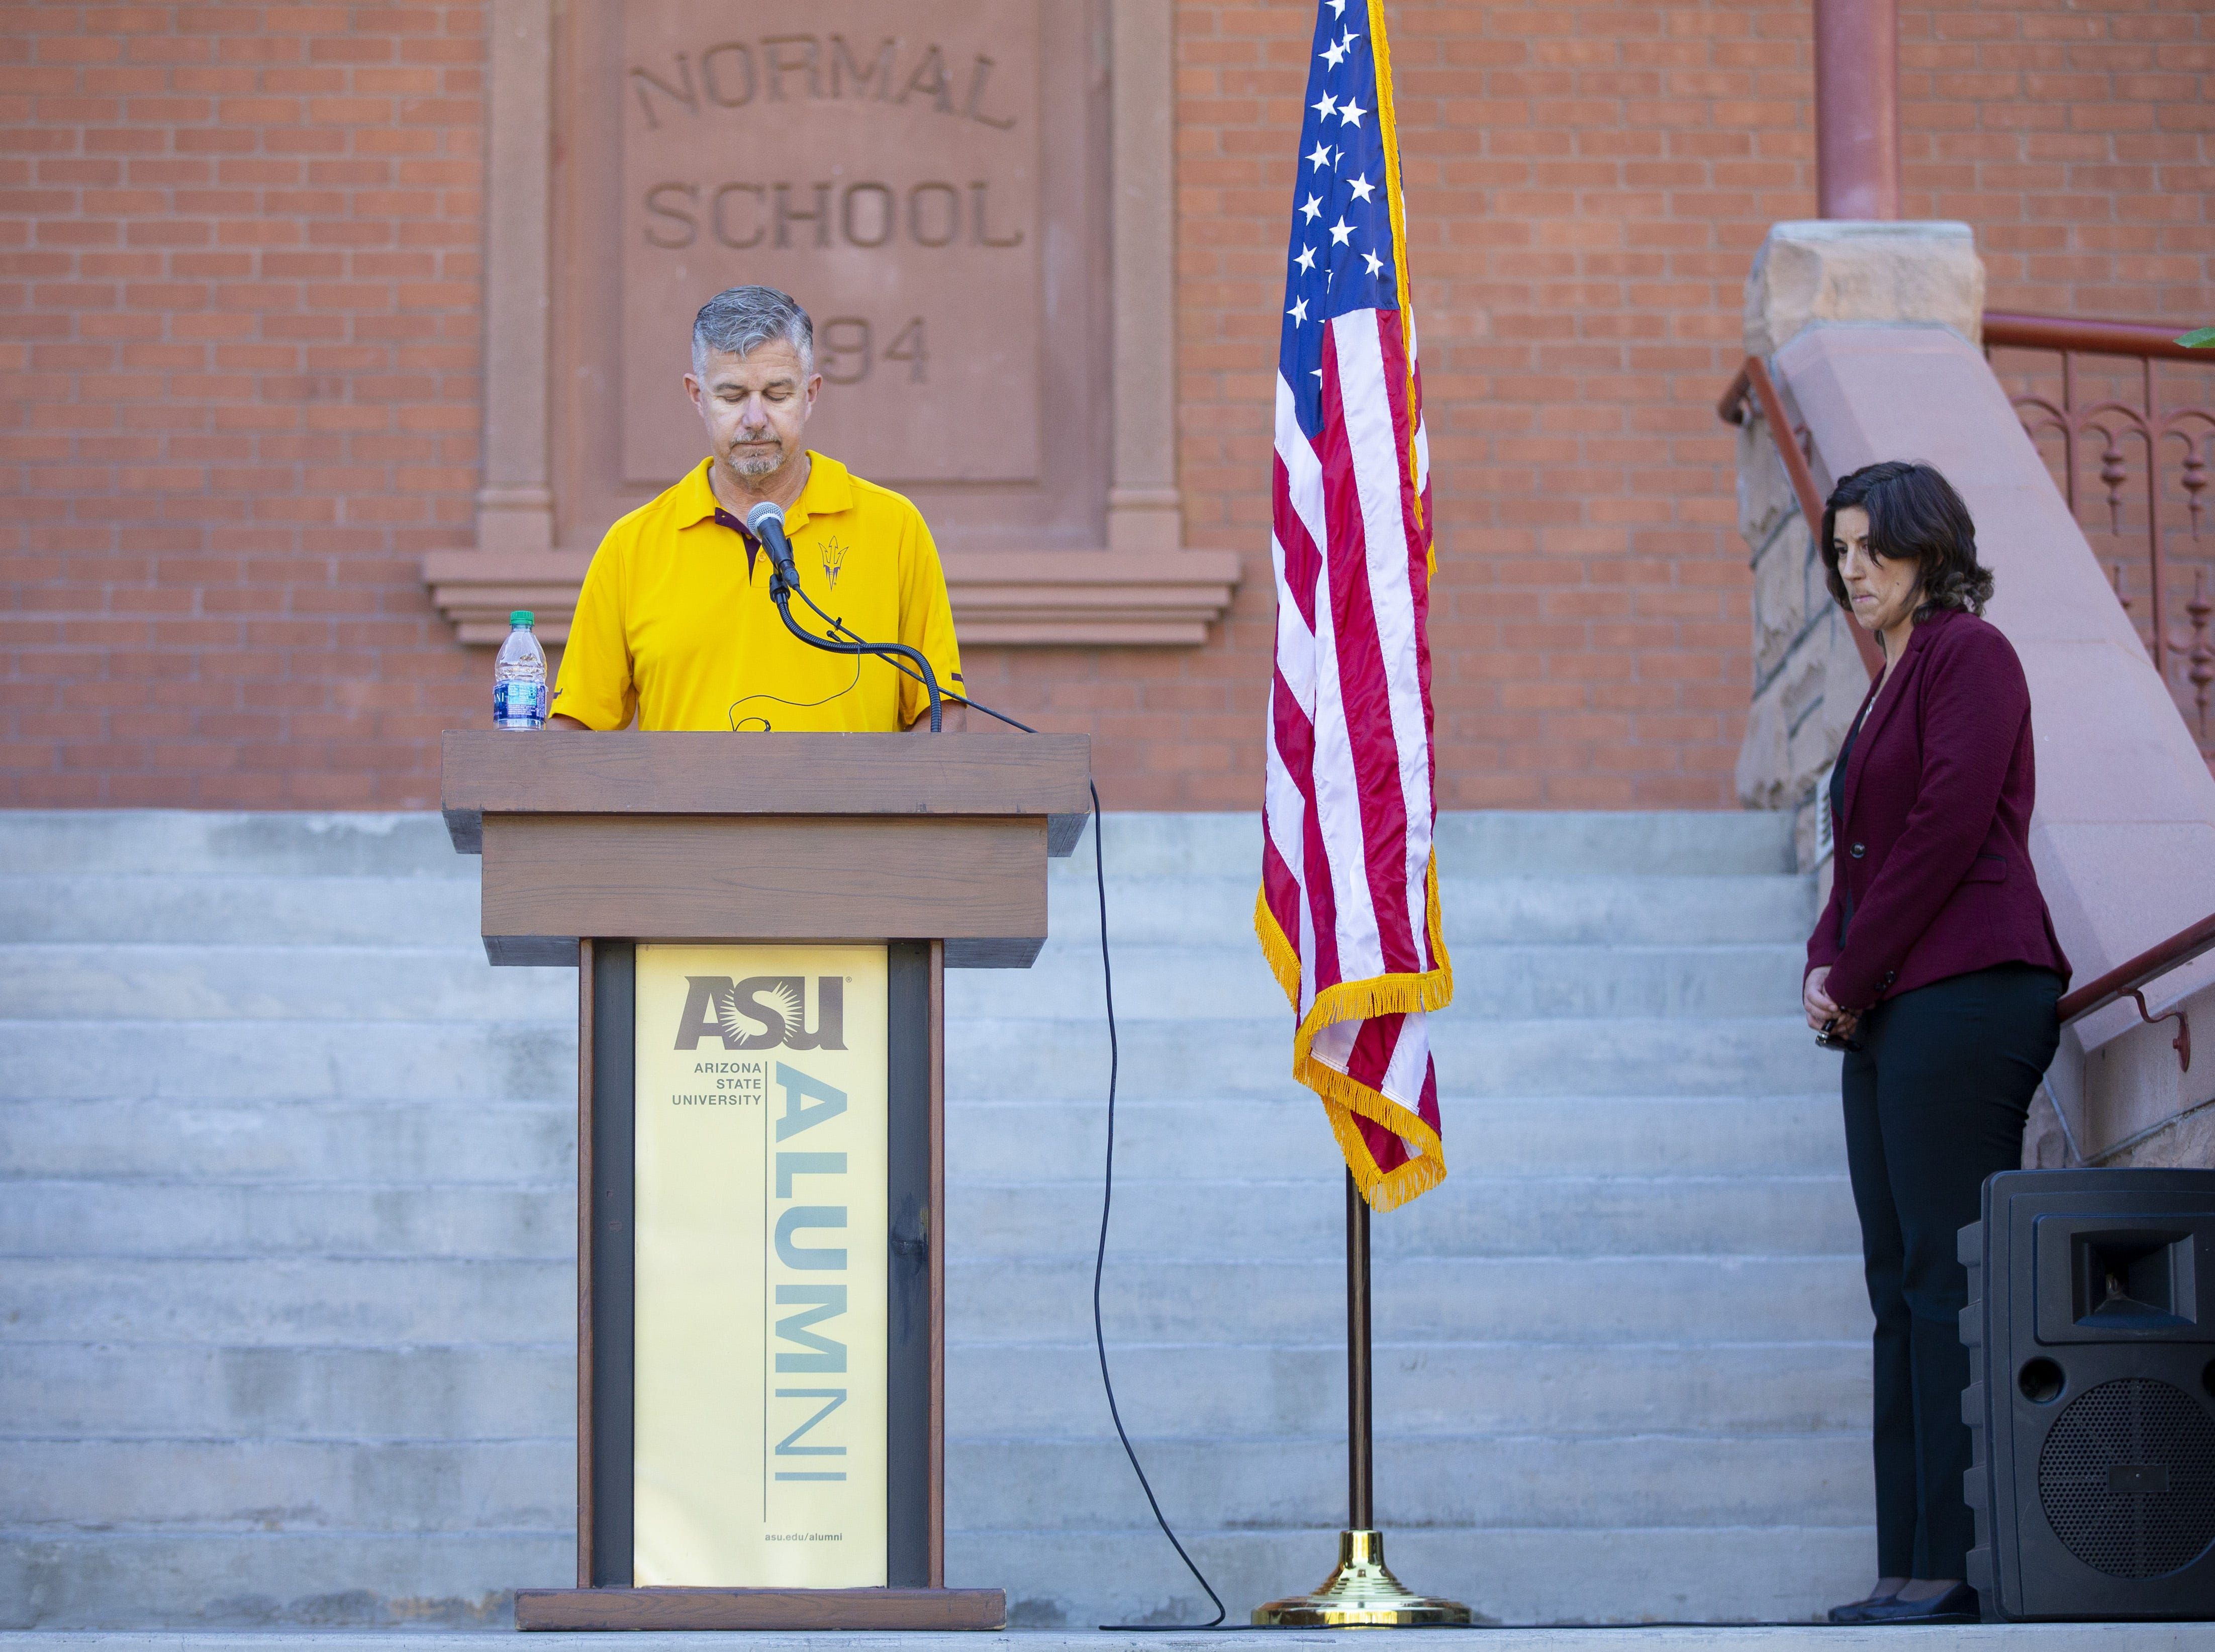 ASU Alumni Army Vet Chris Hill reads some 137 ASU Alumni names who died while serving their country during an annual tradition on the Tempe campus.